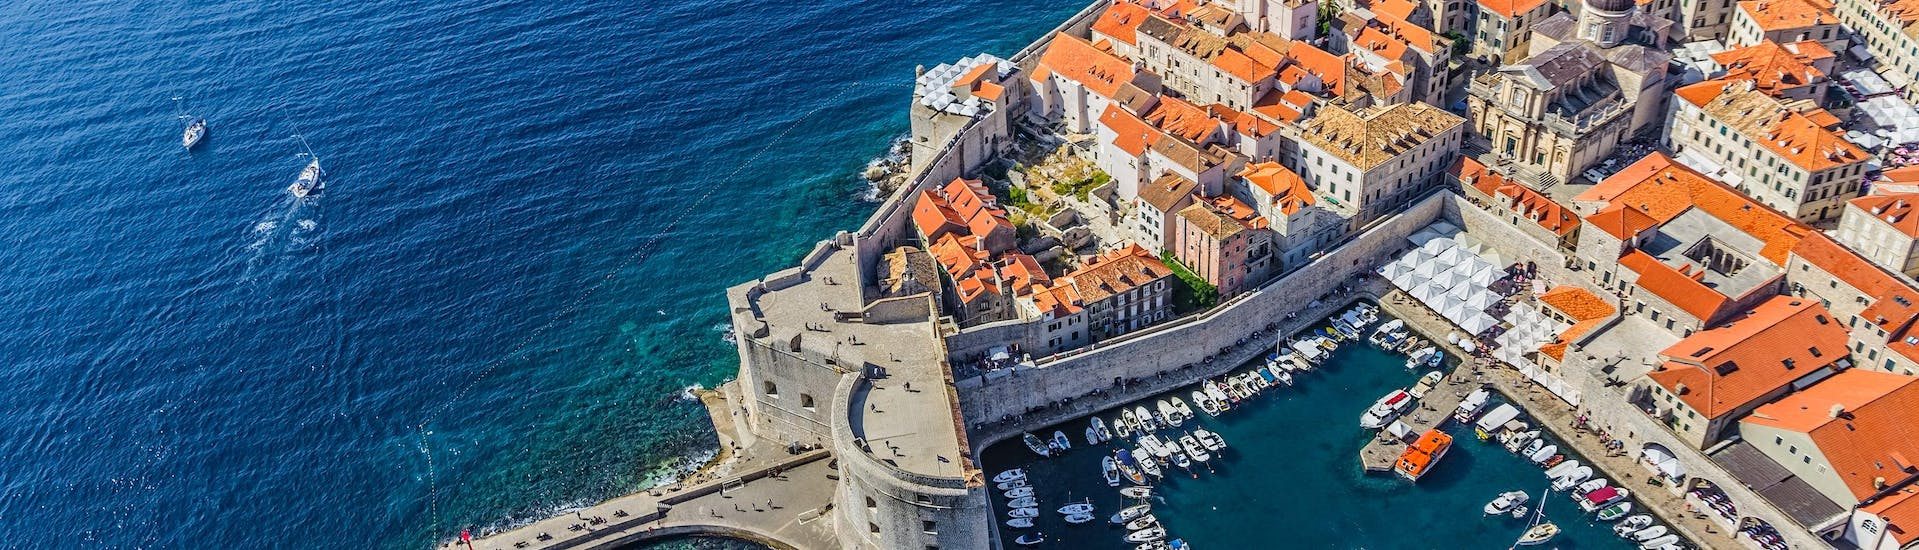 An aerial view of several boats anchored in the old port, a common departure point for boat tours in Dubrovnik.